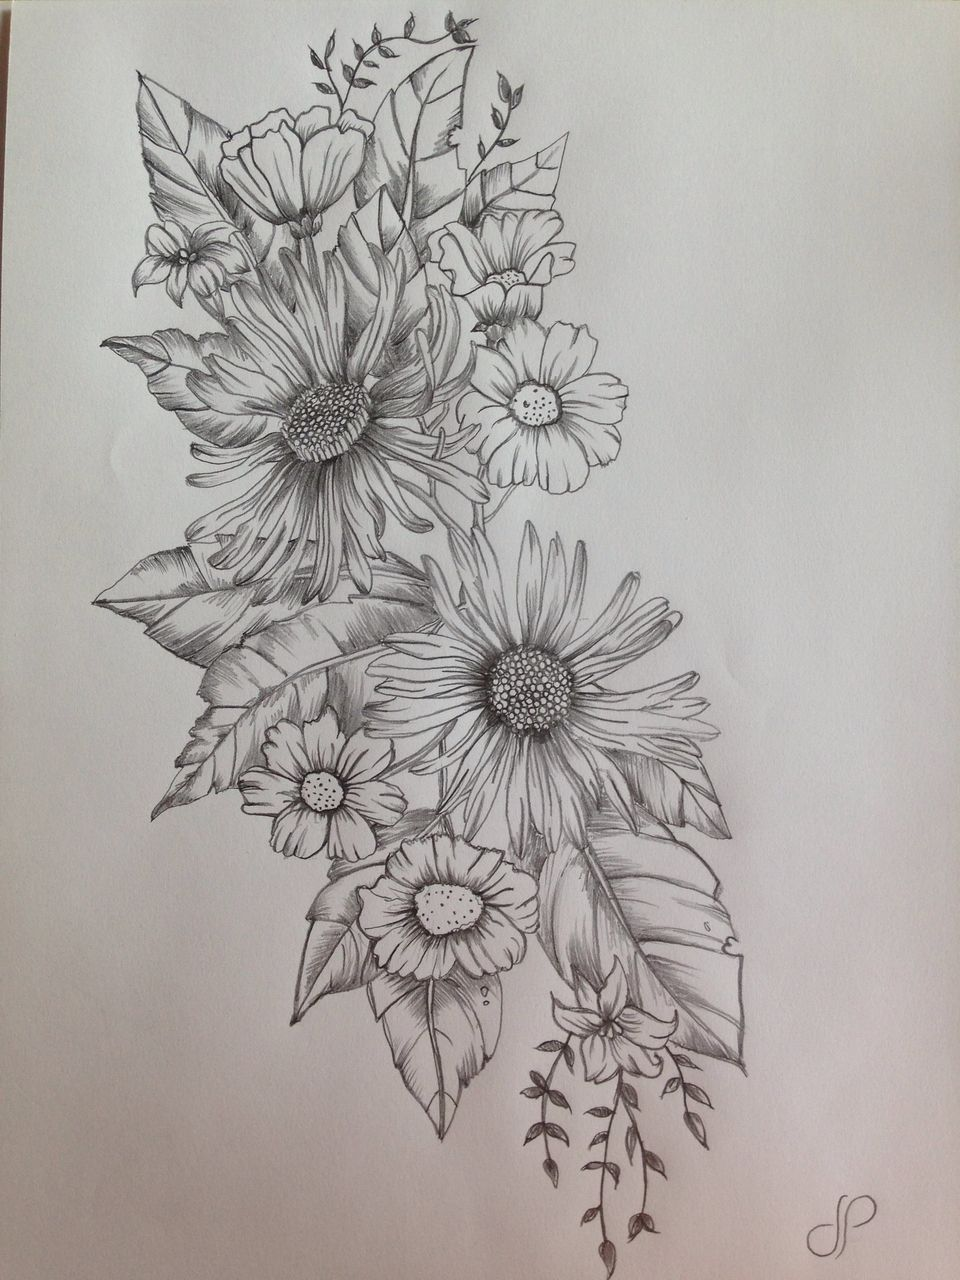 art, black, draw, drawing, flowers, how to, leaves, pencil